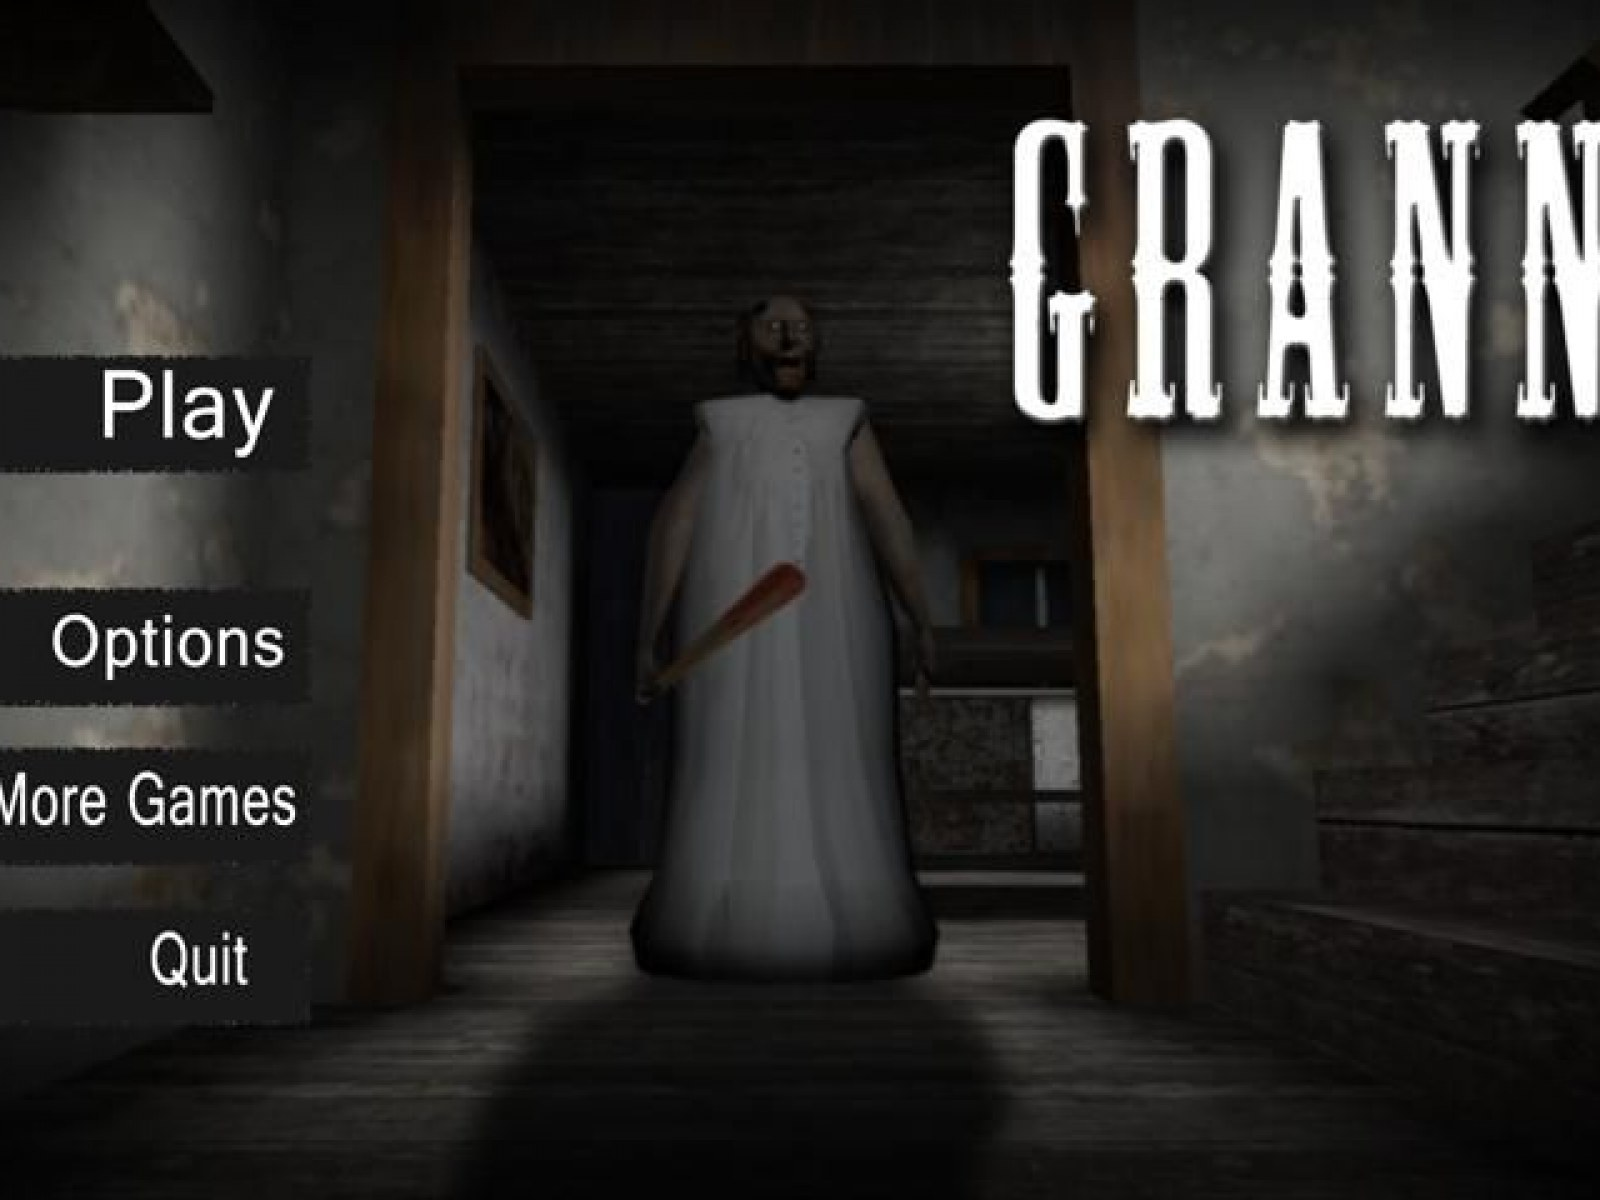 Granny (Trailer 2) Android and iOS